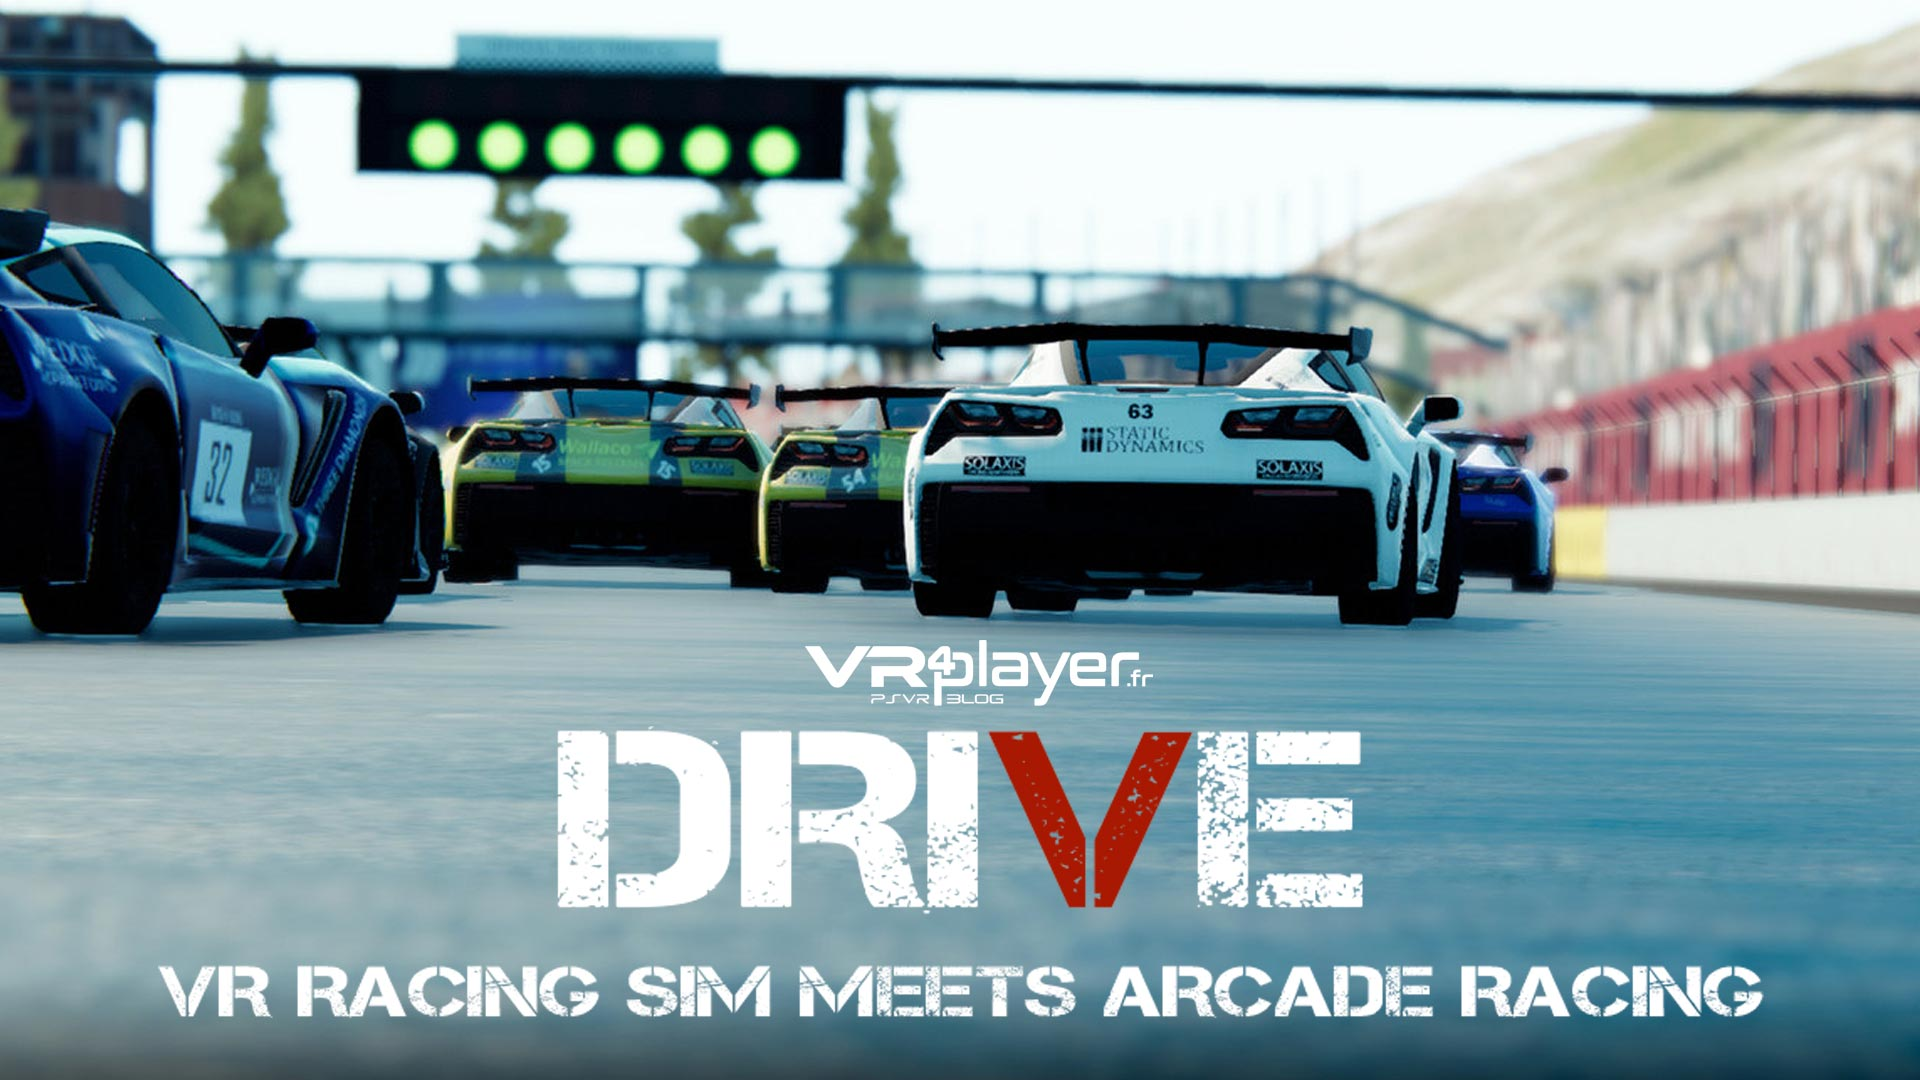 Drive VR PSVR PlayStation VR VR4Player